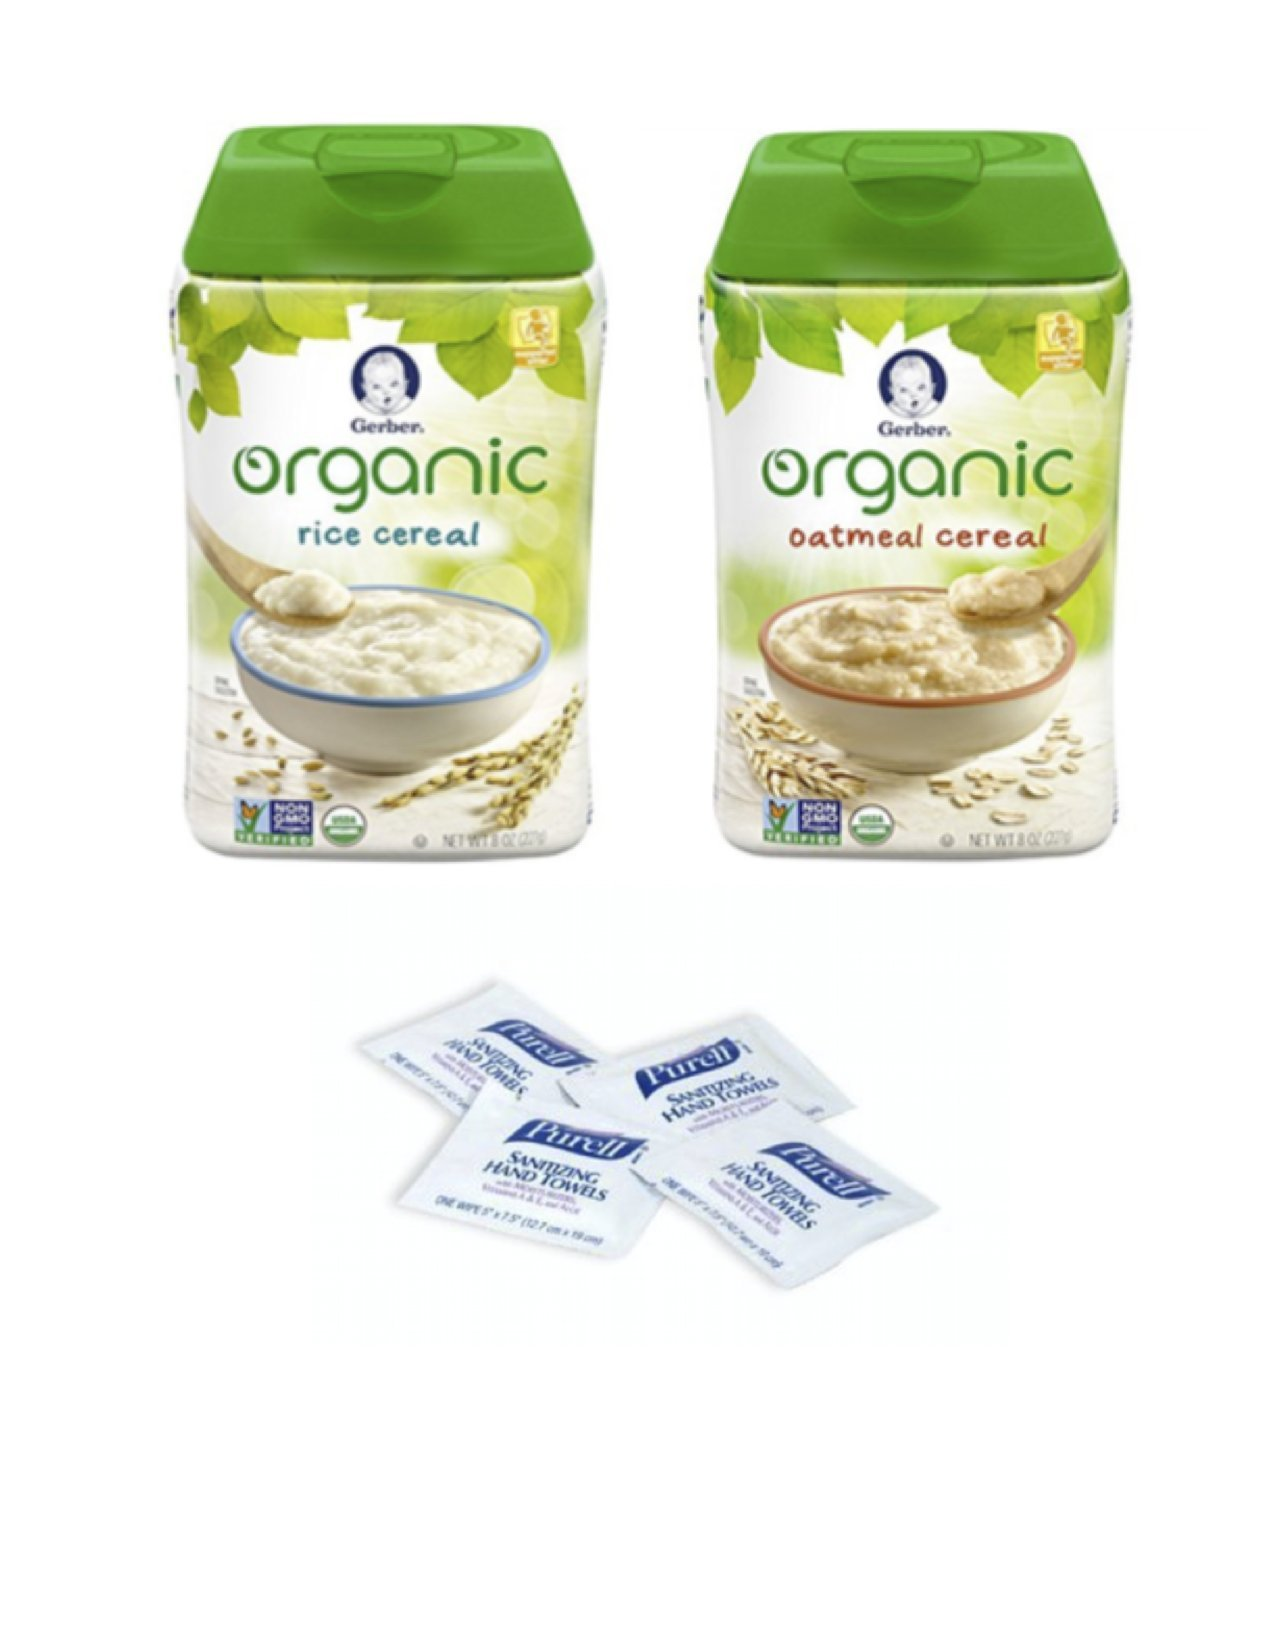 Gerber Baby Cereal Organic Pack- Organic Oatmeal Cereal and Organic Rice Cereal 8oz. with bonus of 4 Purell Hand Sanitizing Wipes by Gerber